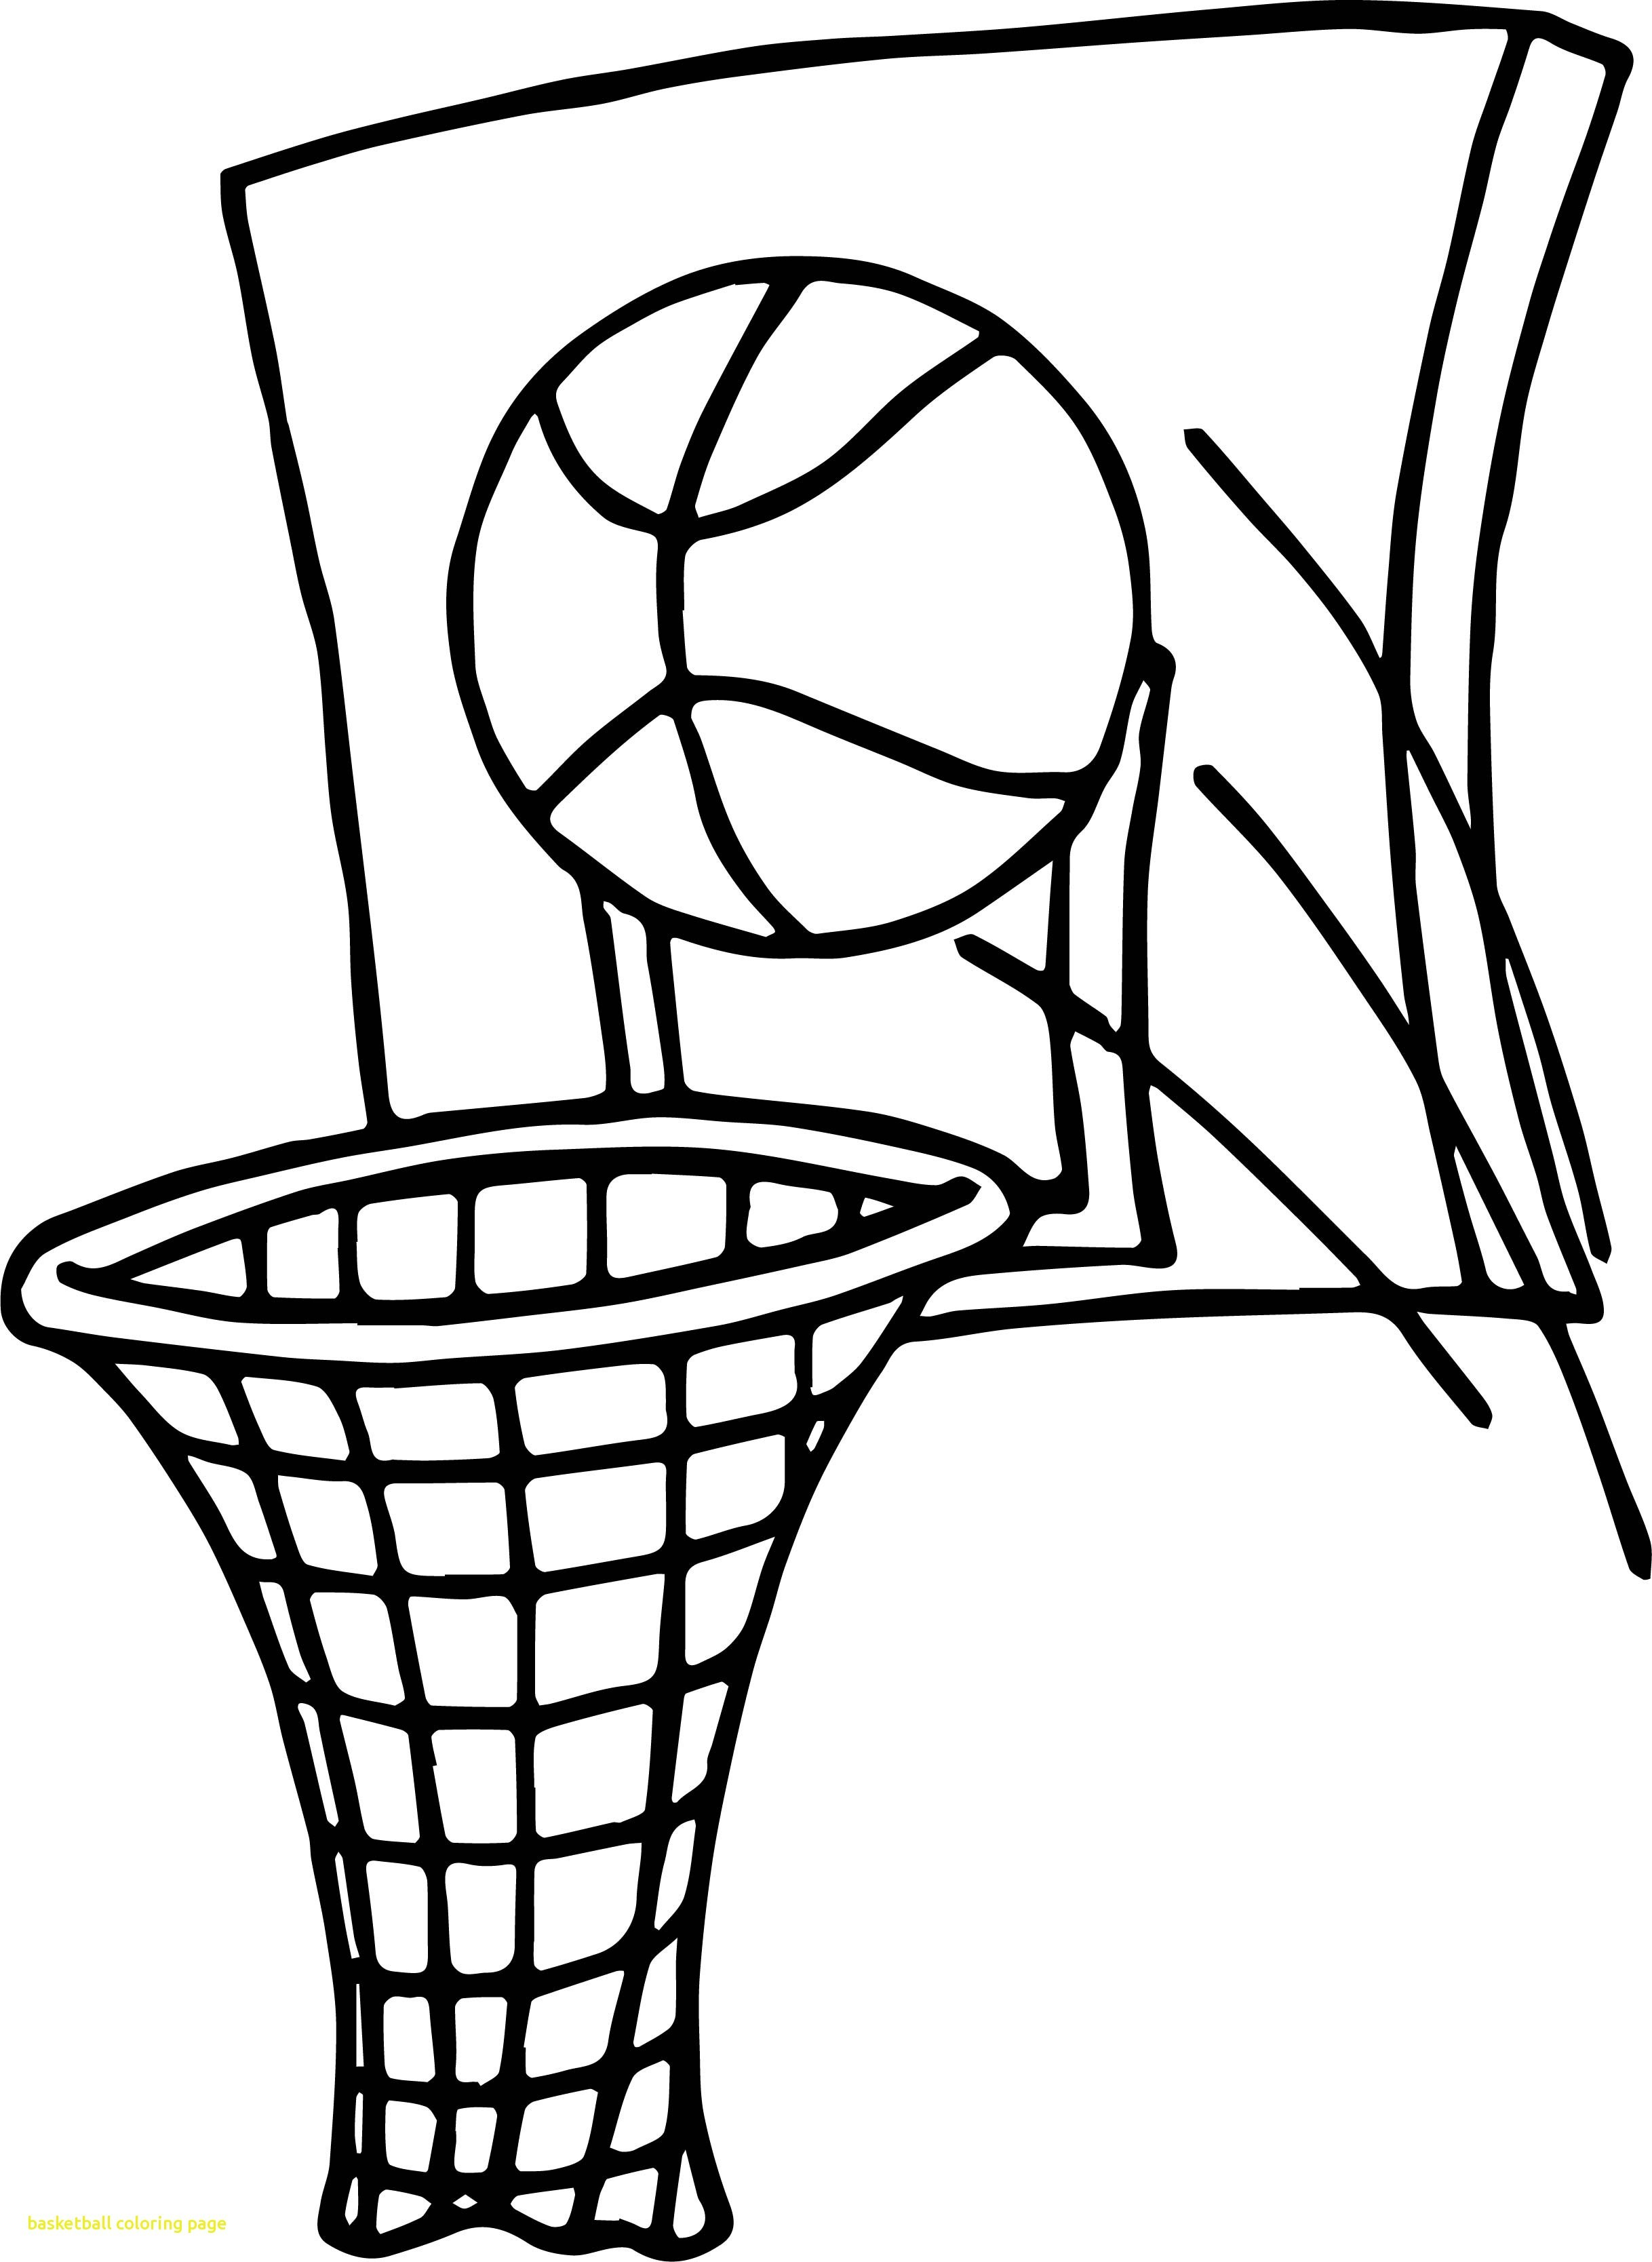 2436x3335 Delighted Basketball Coloring Pages To Print Thunder Logo Oklahoma